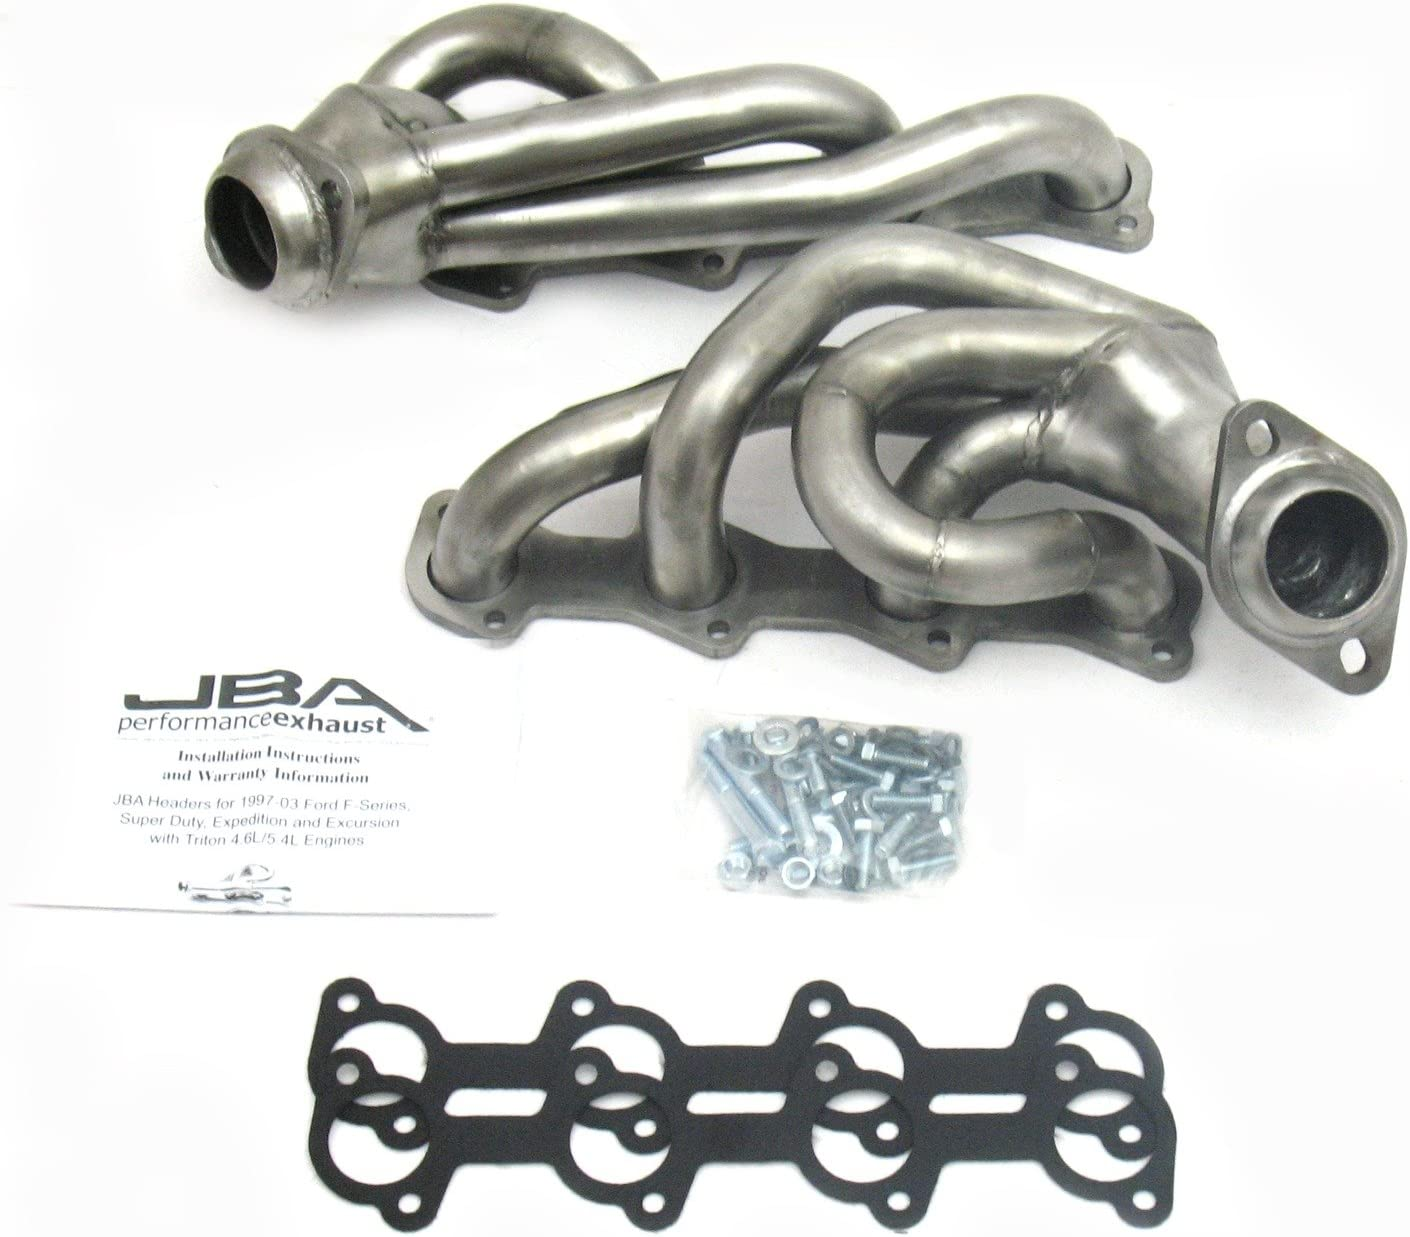 JBA 1679S 1-1//2 Shorty Stainless Steel Exhaust Header for Ford Truck 5.4L 2V 97-03